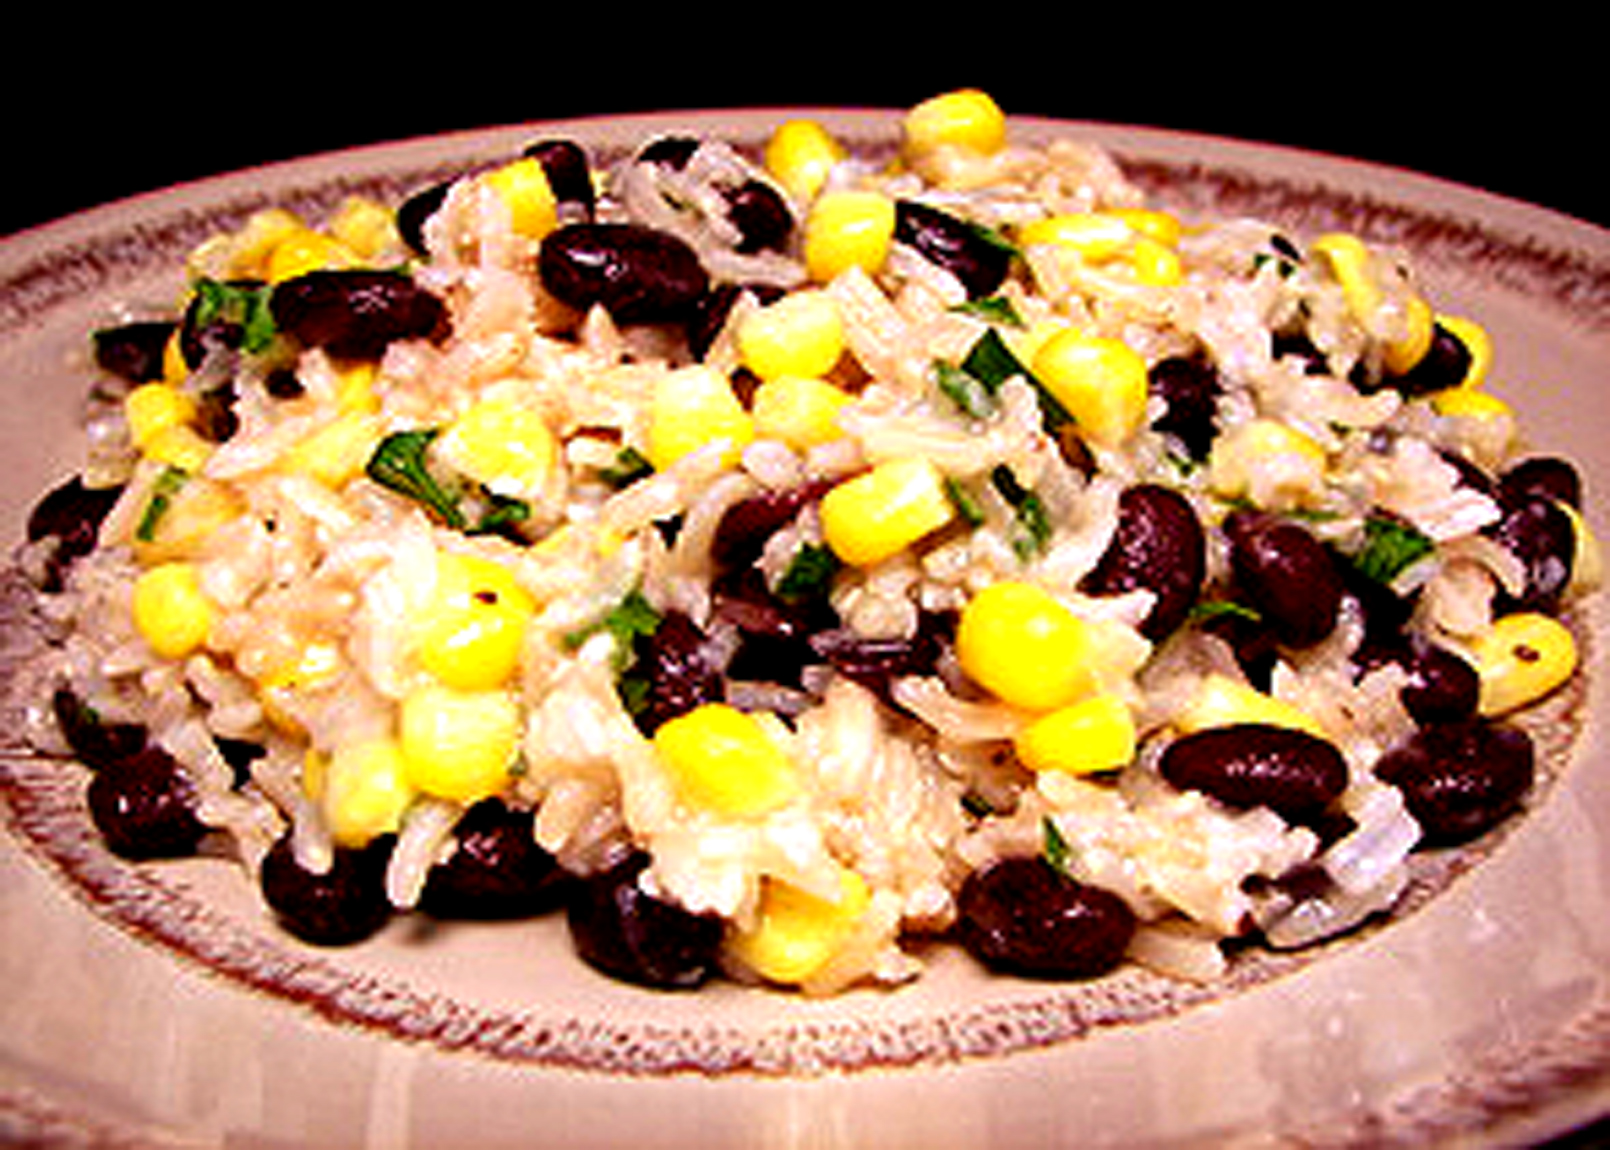 Rice Salad picture